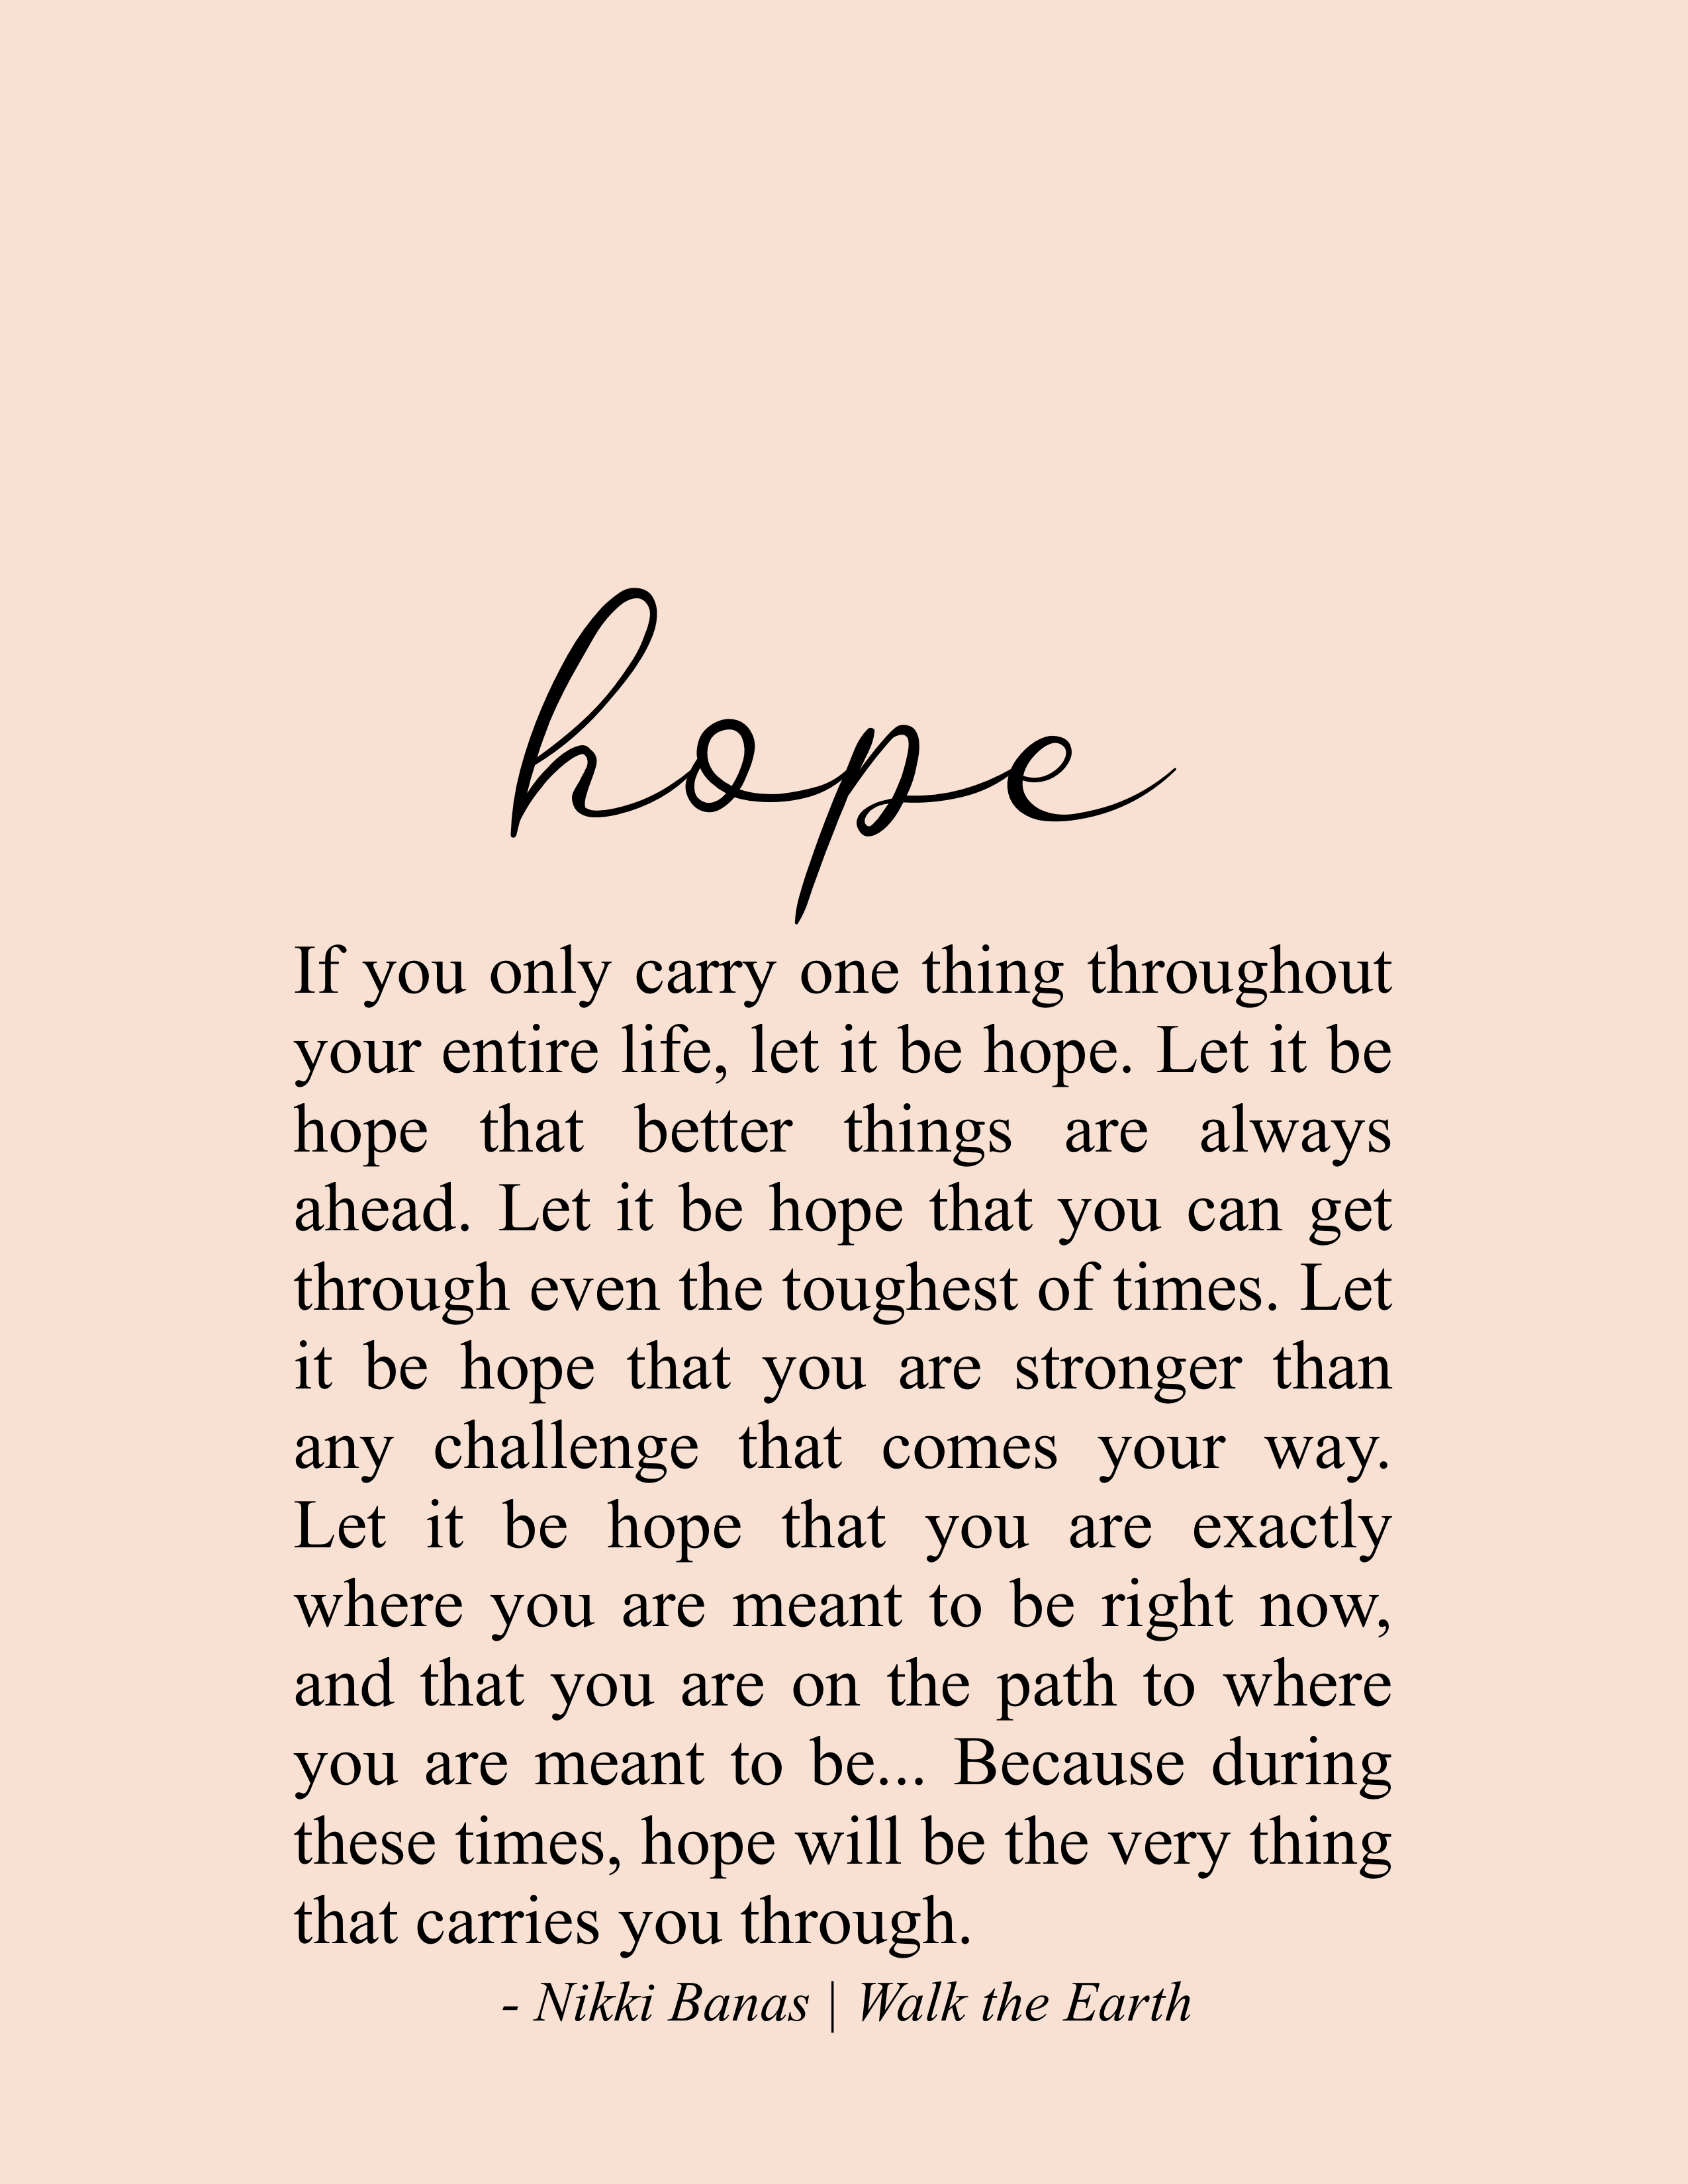 Always Have Hope Quotes, Faith, Inspiration, Believe, Love, Nikki Banas,  Walk the Earth Poetry | Positive quotes for life, Positive quotes, Wise  words quotes